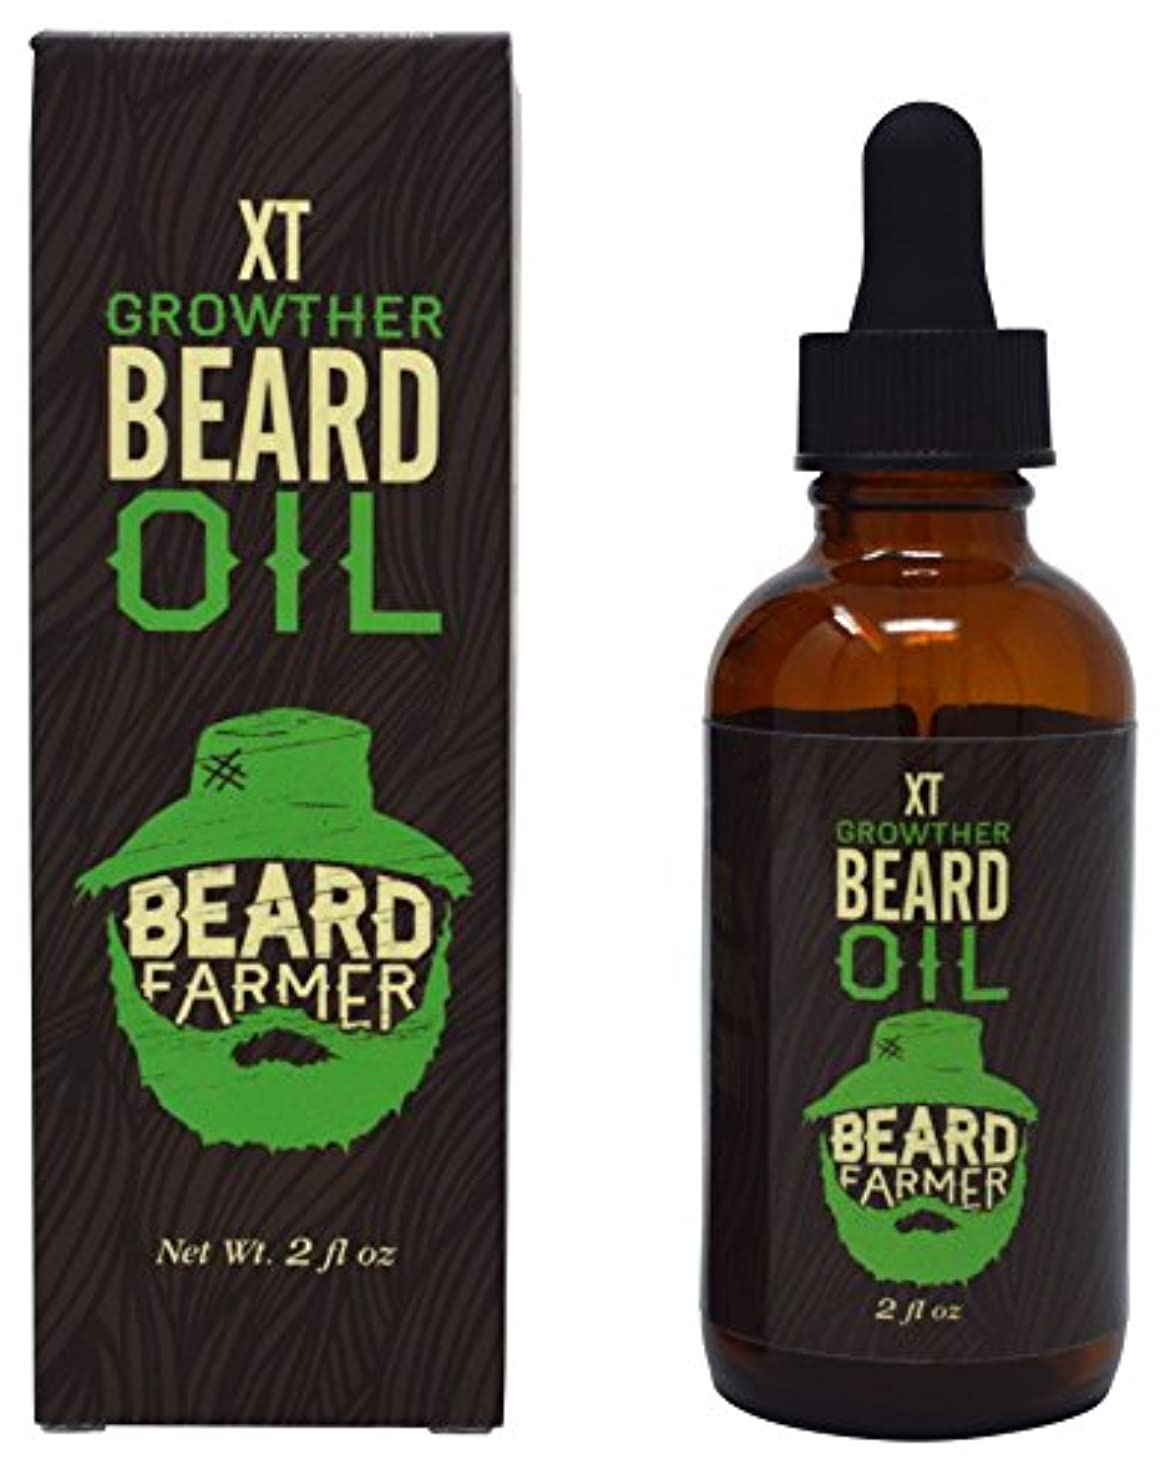 花束ゆるい哀れなBeard Farmer - Growther XT Beard Oil (Extra Fast Beard Growth) All Natural Beard Growth Oil 2floz